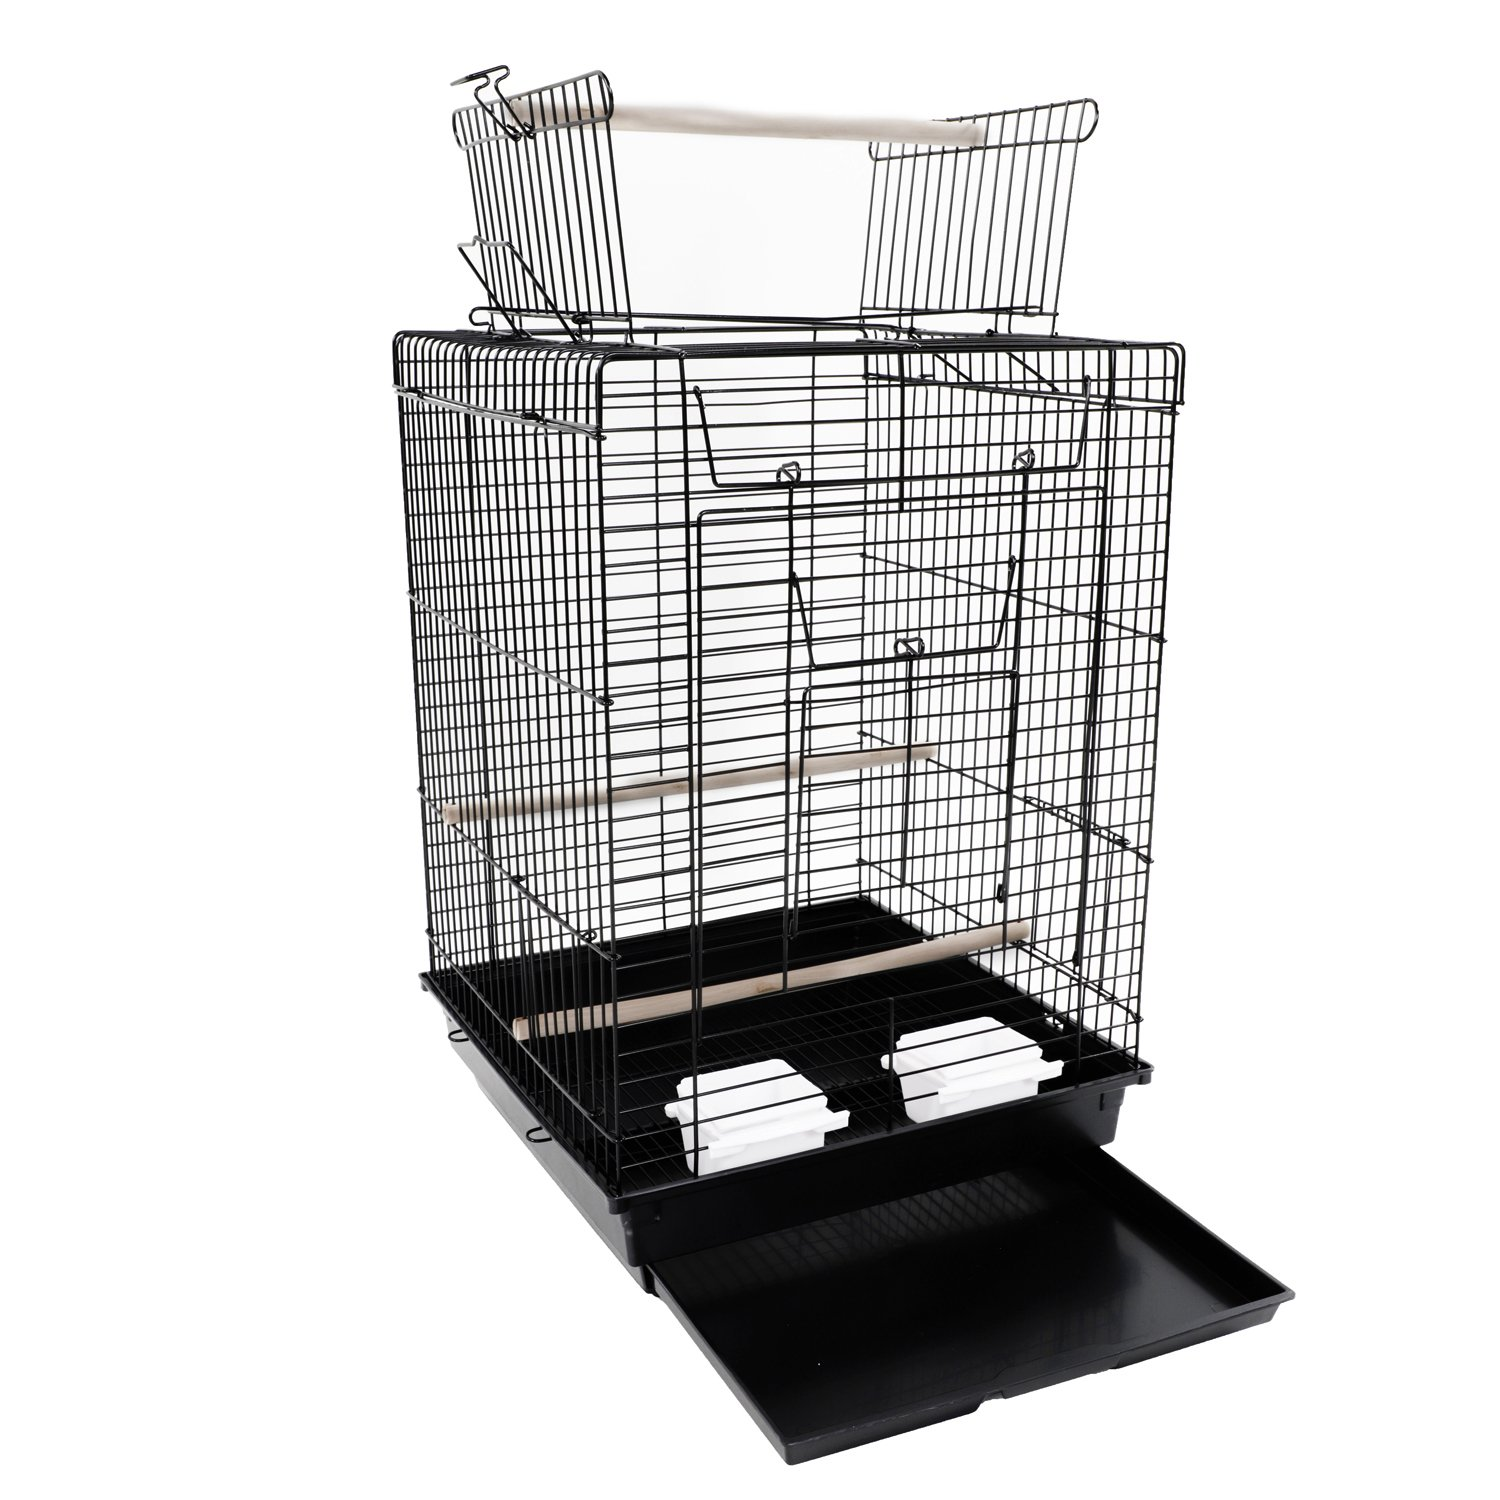 Yoshioe 23'' Bird Metal Cage for Parrot Lovebirds Parakeets with Wood Perches Food Cups Top- Ideal Open Play Black by Yoshioe